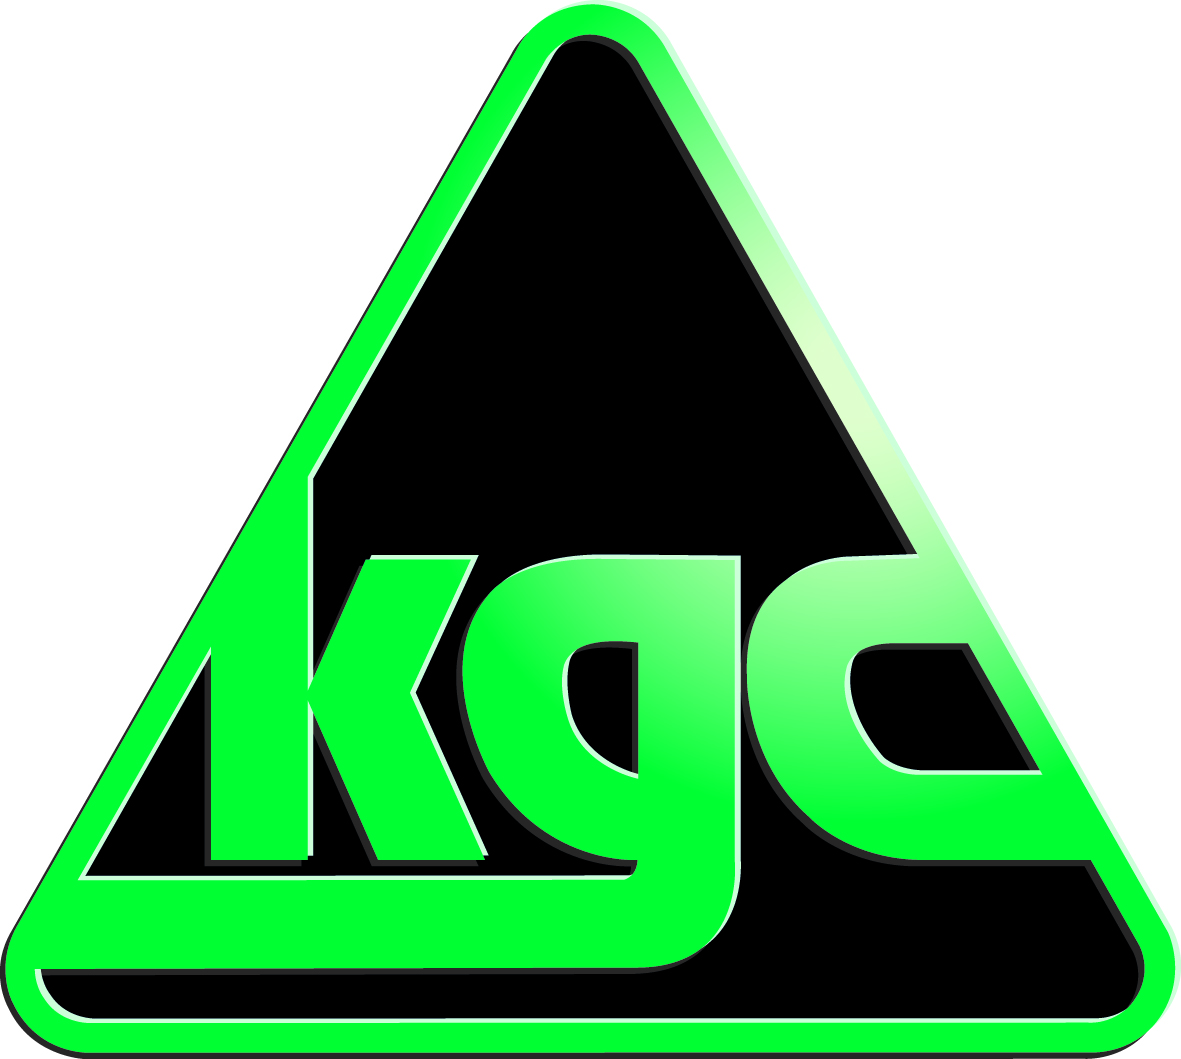 Sale of KGC Verktyg & Maskiner to Bergman & Beving